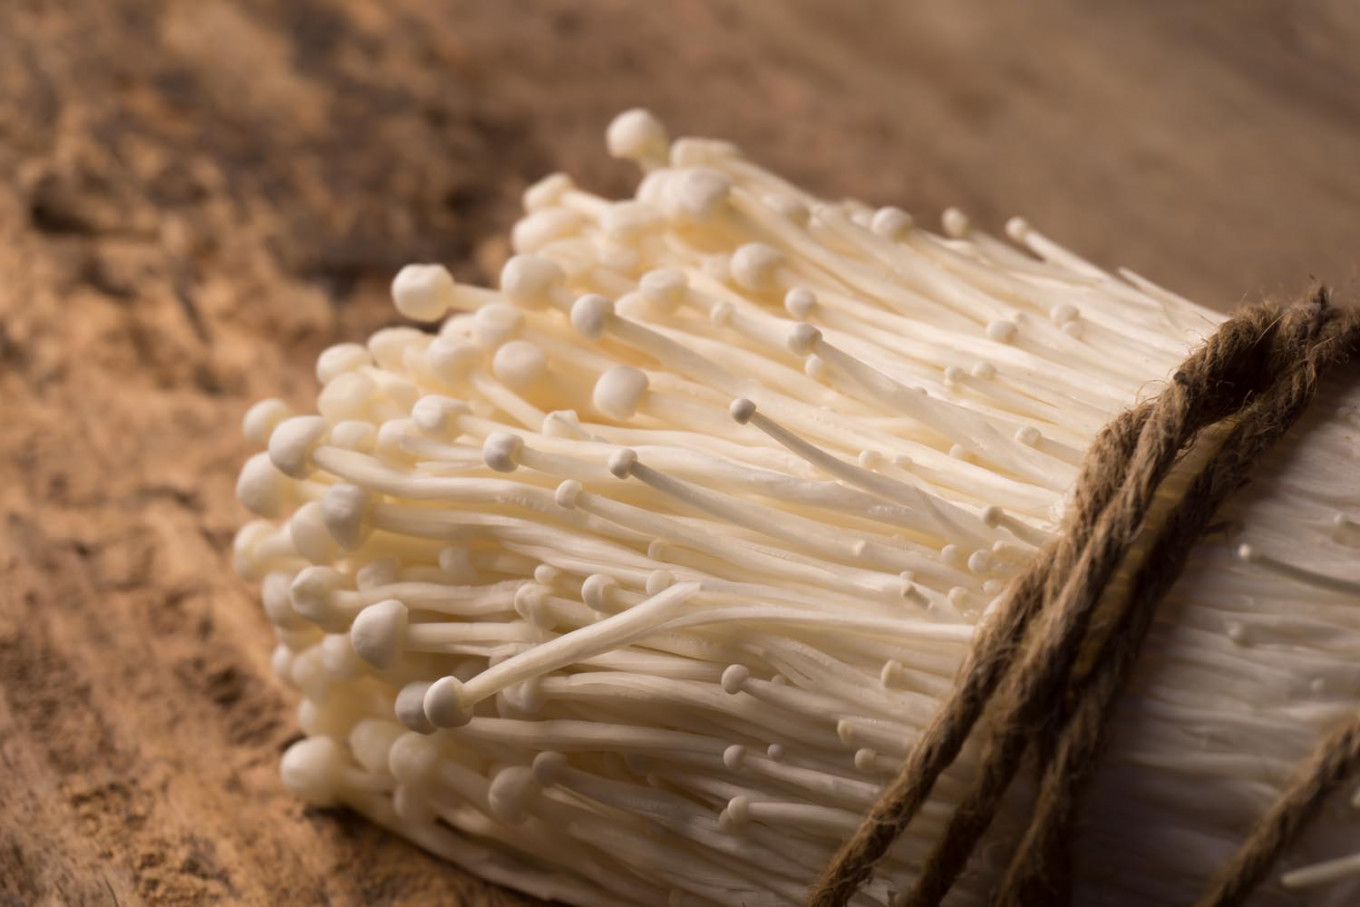 Indonesia orders destruction of imported enoki mushrooms over listeriosis fears